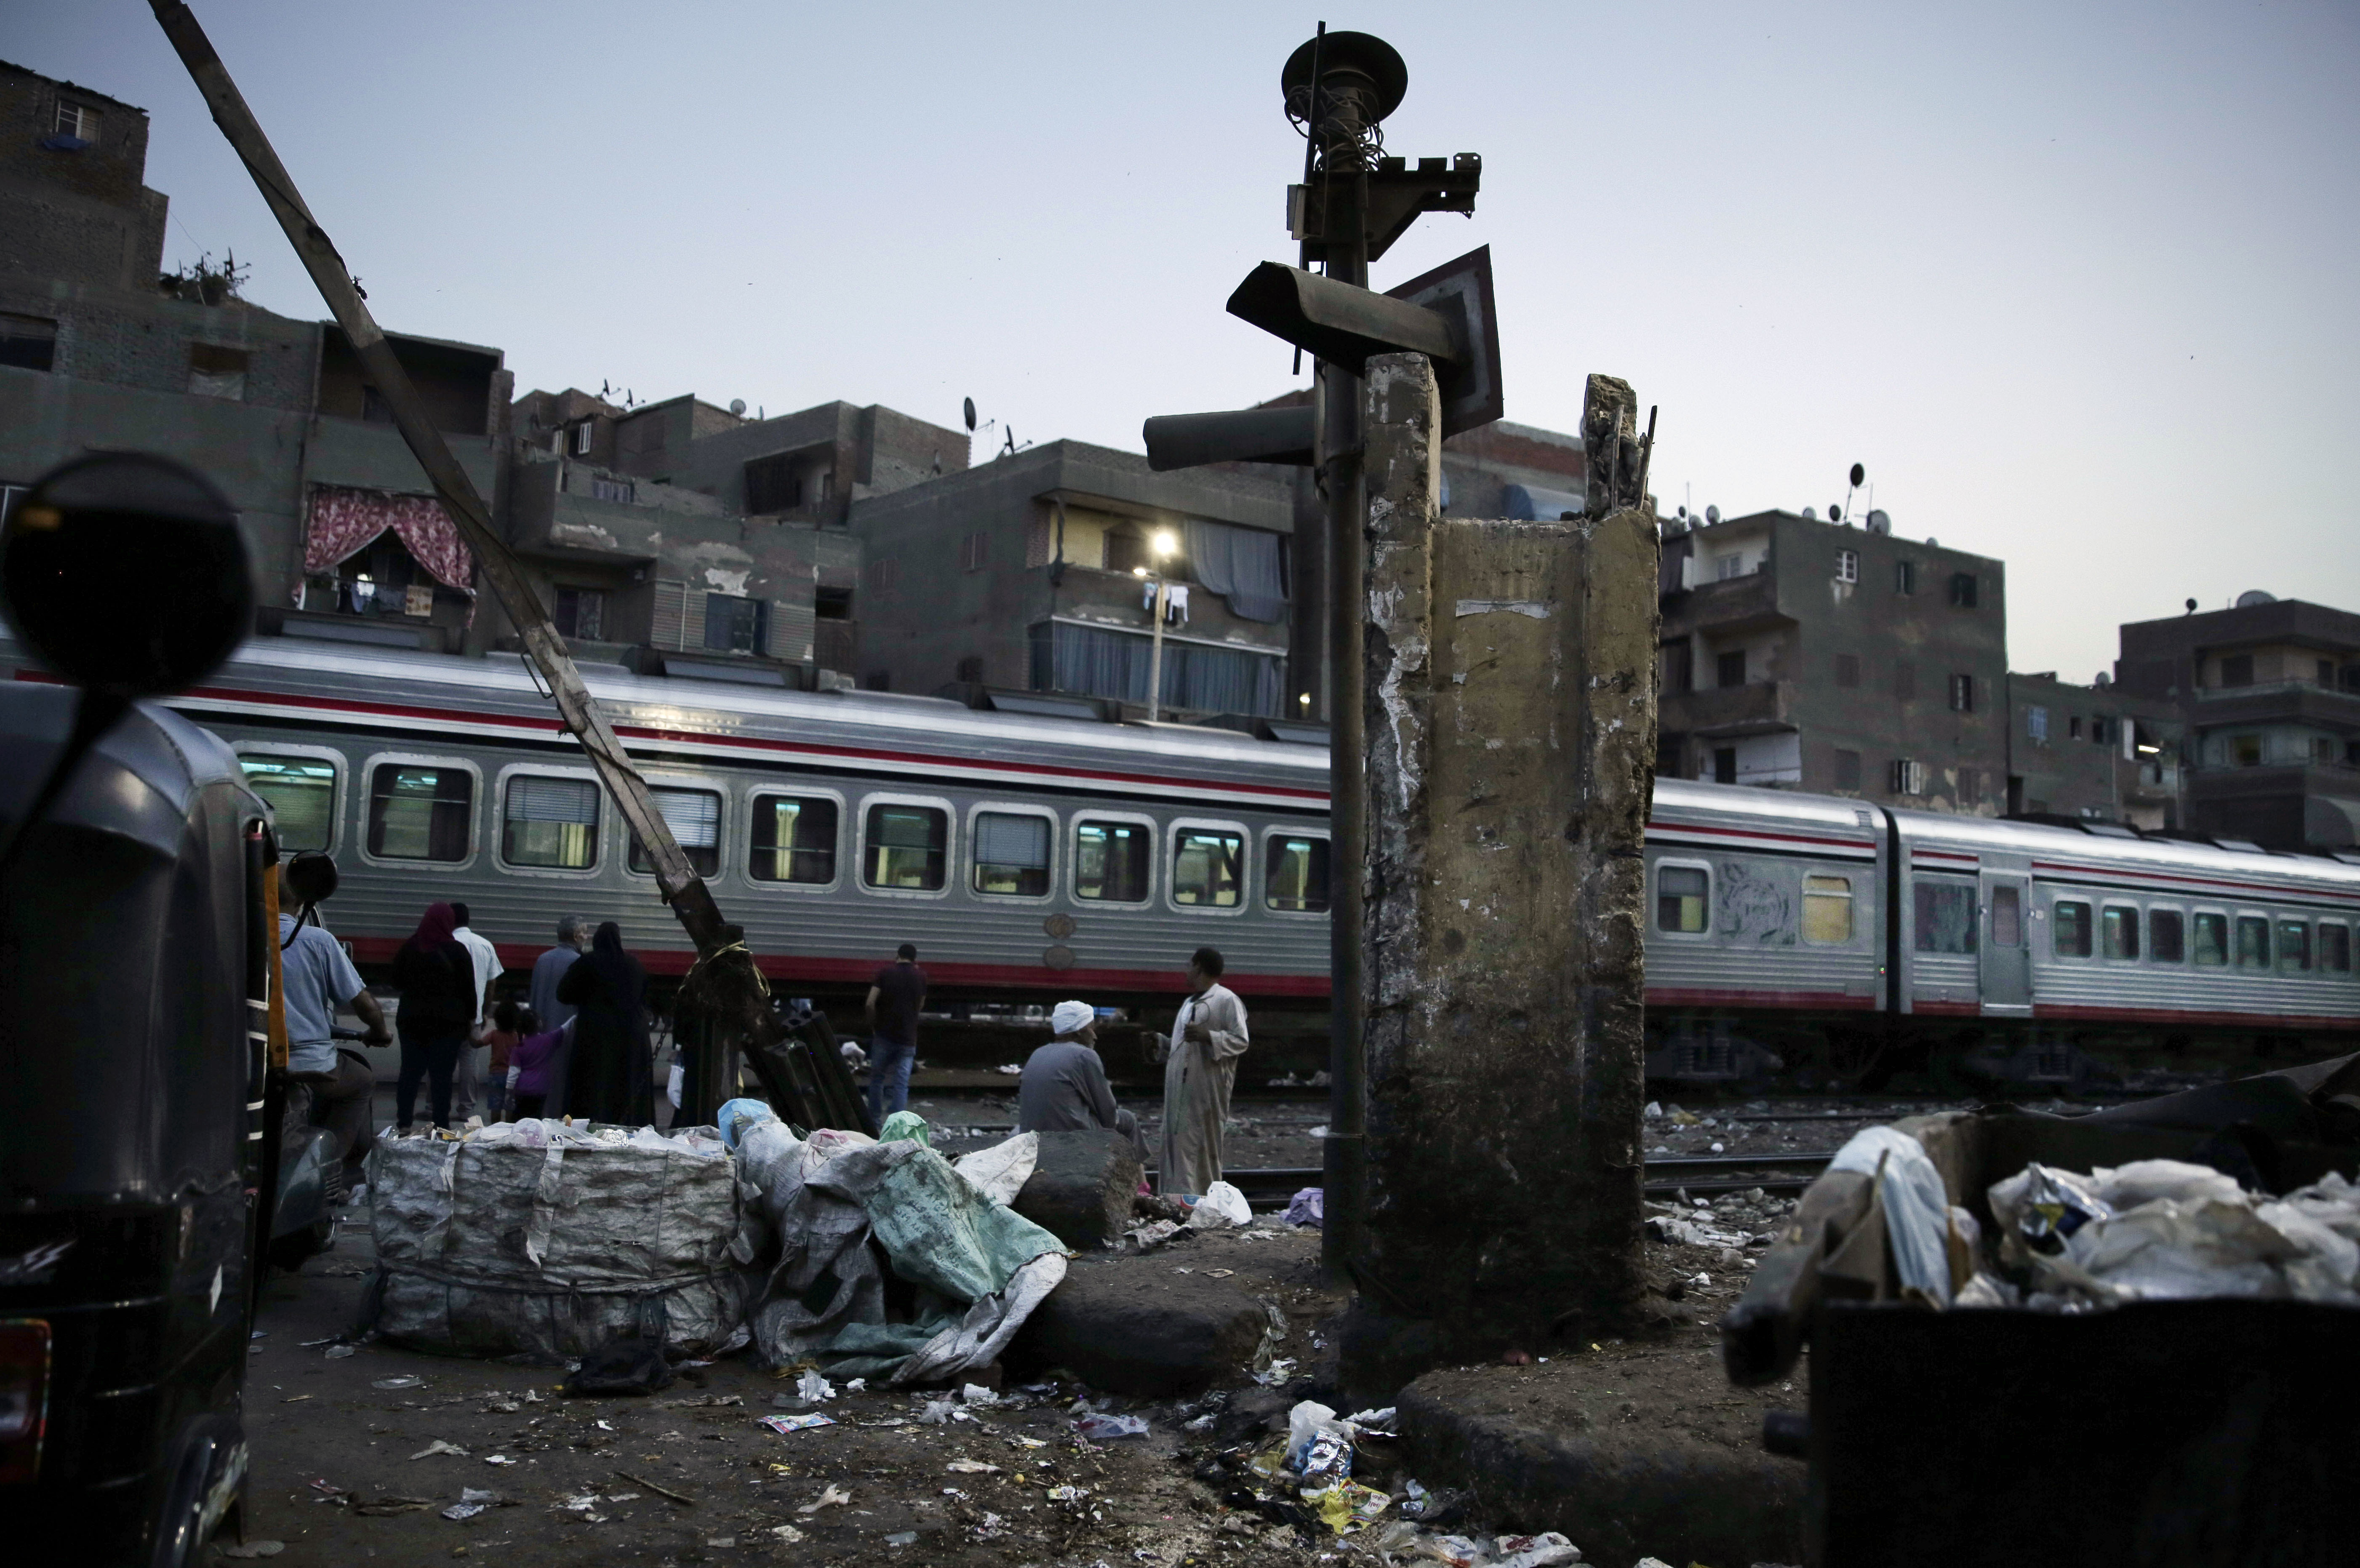 Egypt arrests train conductor after youth jumps to his death